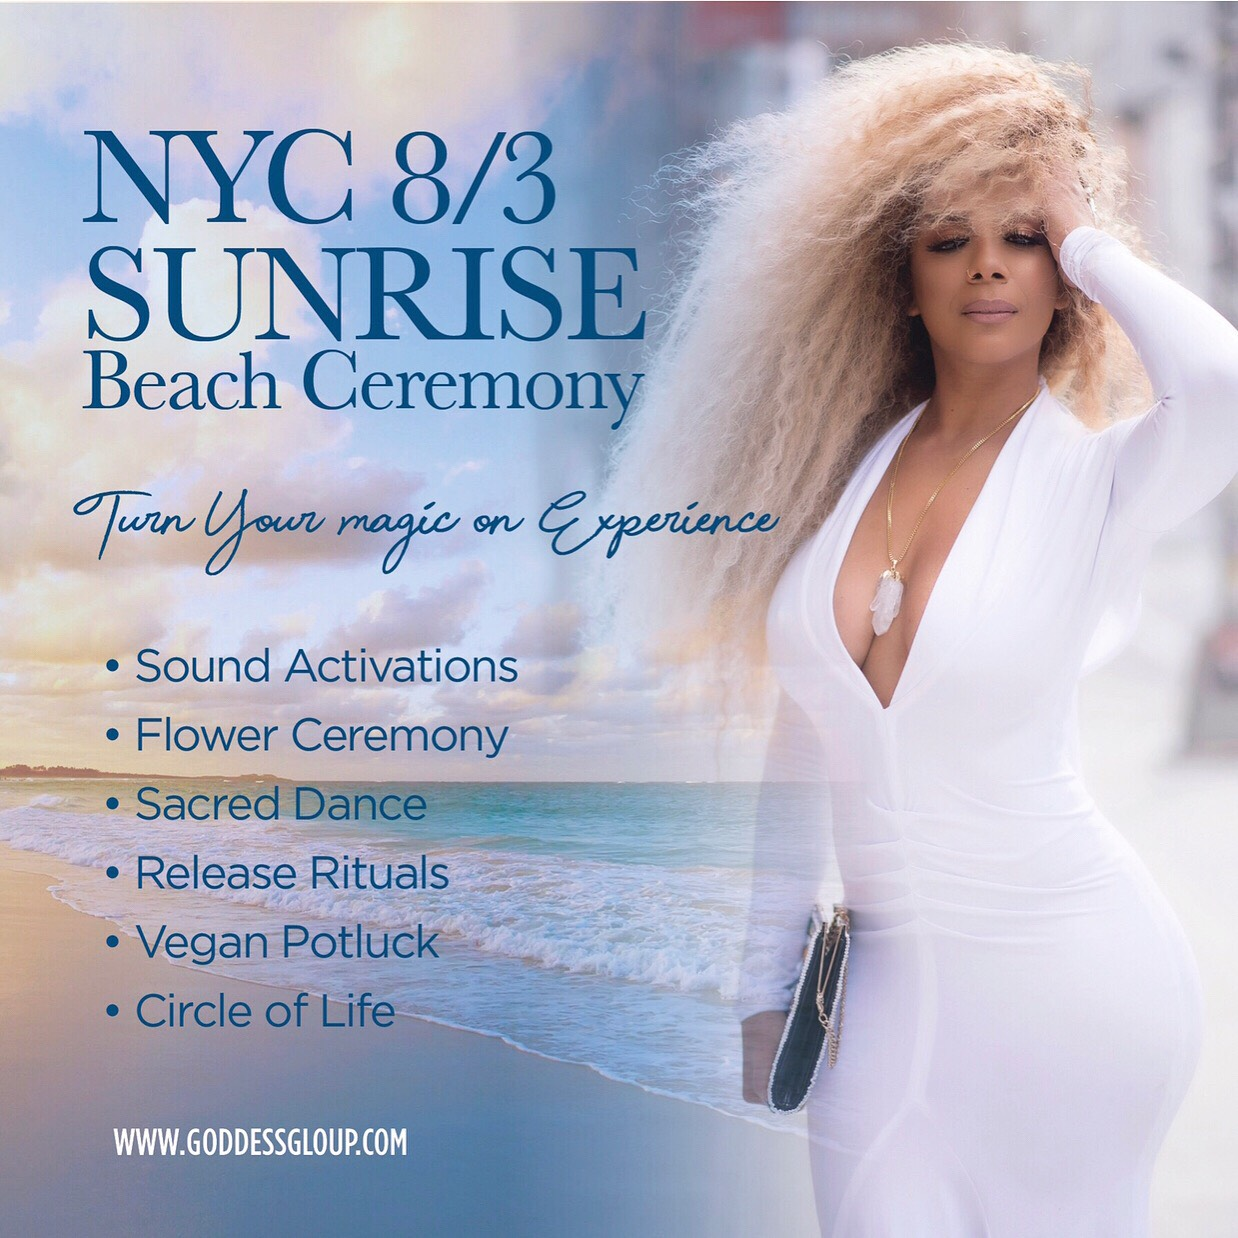 Sunrise Beach Ceremony–August 3rd 6AM